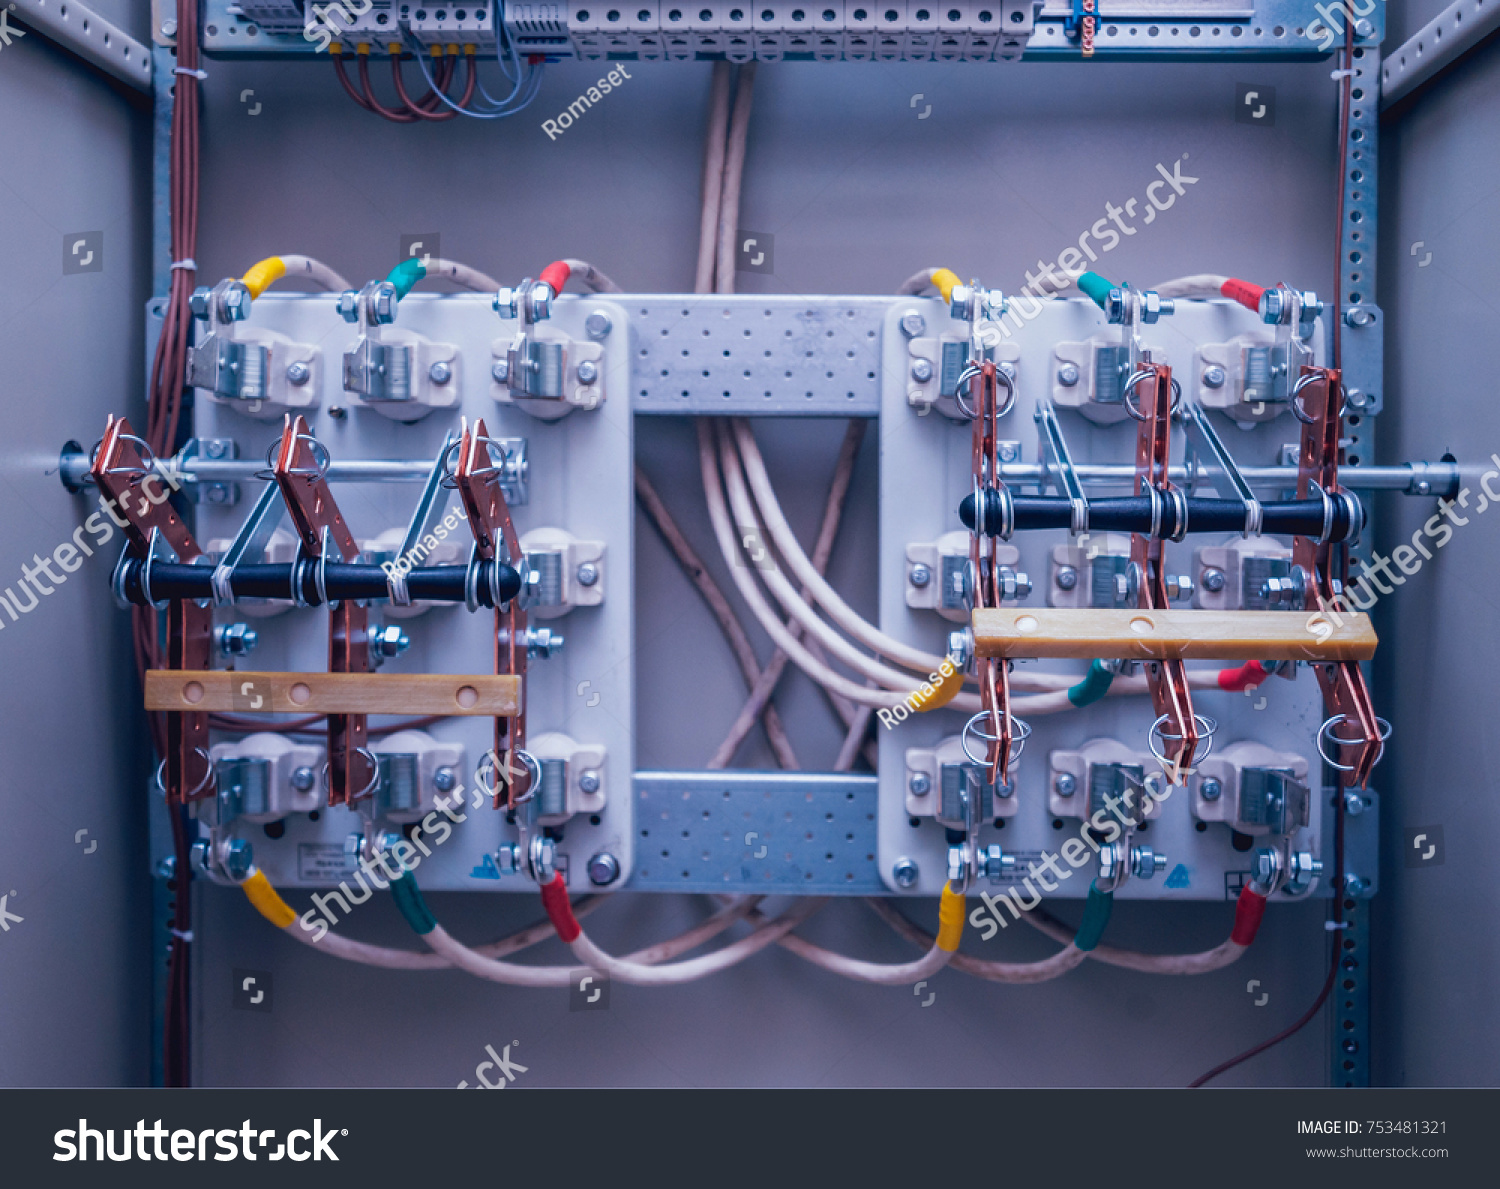 hight resolution of wires and switches in electric box electrical panel with fuses and contactors background and